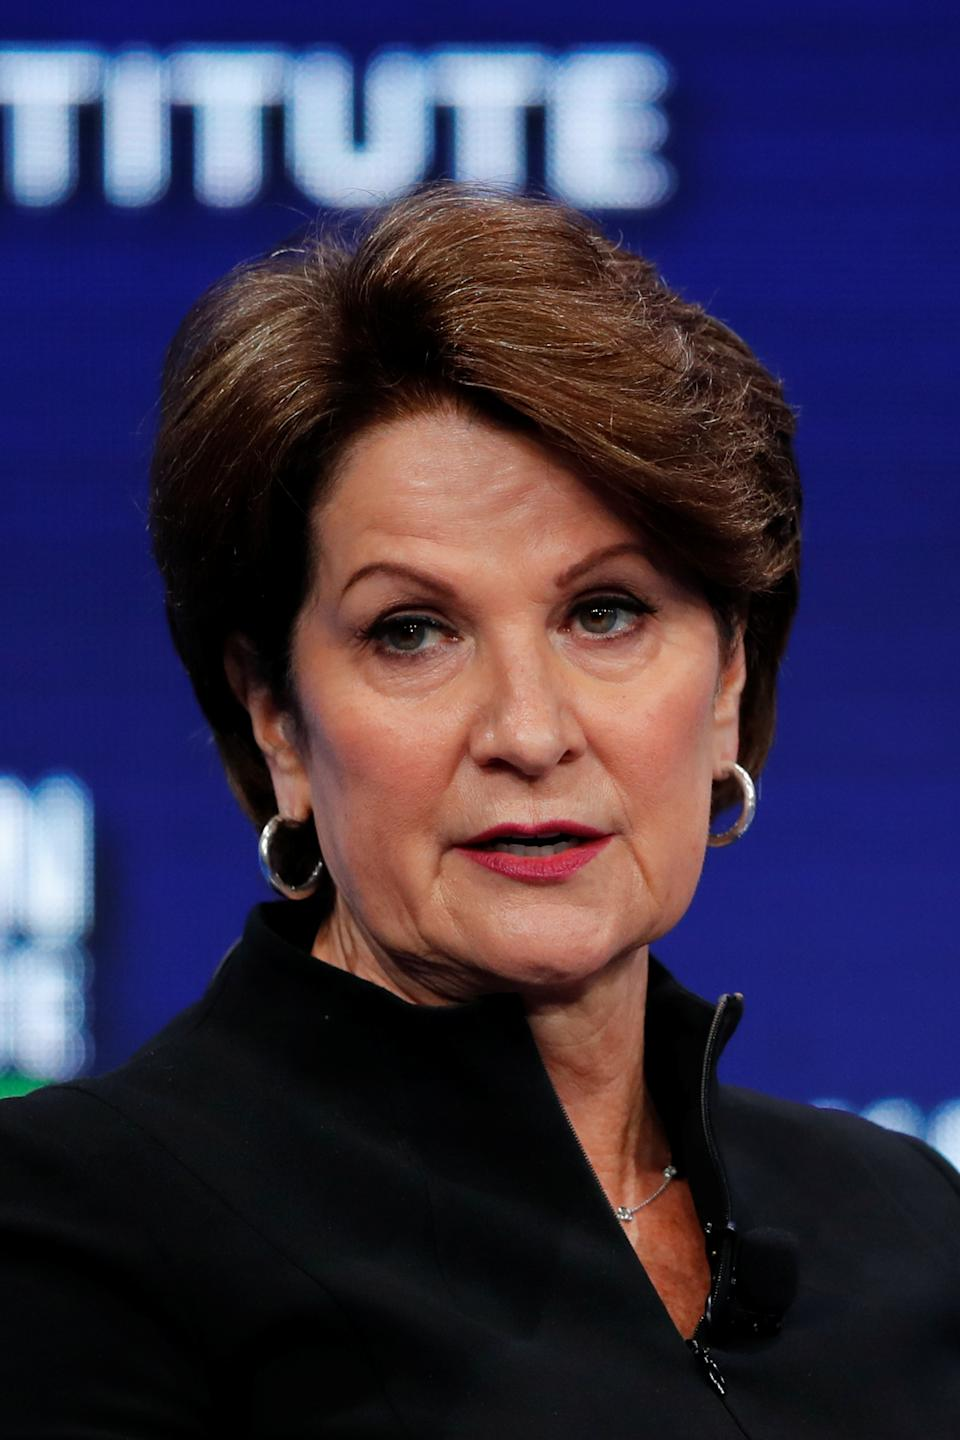 Hewson joined the Lockheed Corporation in 1983. She has held a variety of executive positions with the company. On November 9, 2012, she was elected to Lockheed Martin's board of directors.[5] She has been the CEO since January 2013. She also serves on the board of directors for Sandia National Laboratories since 2010 and DuPont since 2007.[9] Since becoming CEO in 2013, Lockheed's market cap has doubled. In July 2015, Hewson announced the purchase of Sikorsky Aircraft, the producers of Sikorsky UH-60 Black Hawk helicopters, giving Lockheed its own helicopter building capability. Hewson has also shifted more company efforts towards building military hardware.[10] Hewson joined the board of Johnson & Johnson in 2019.